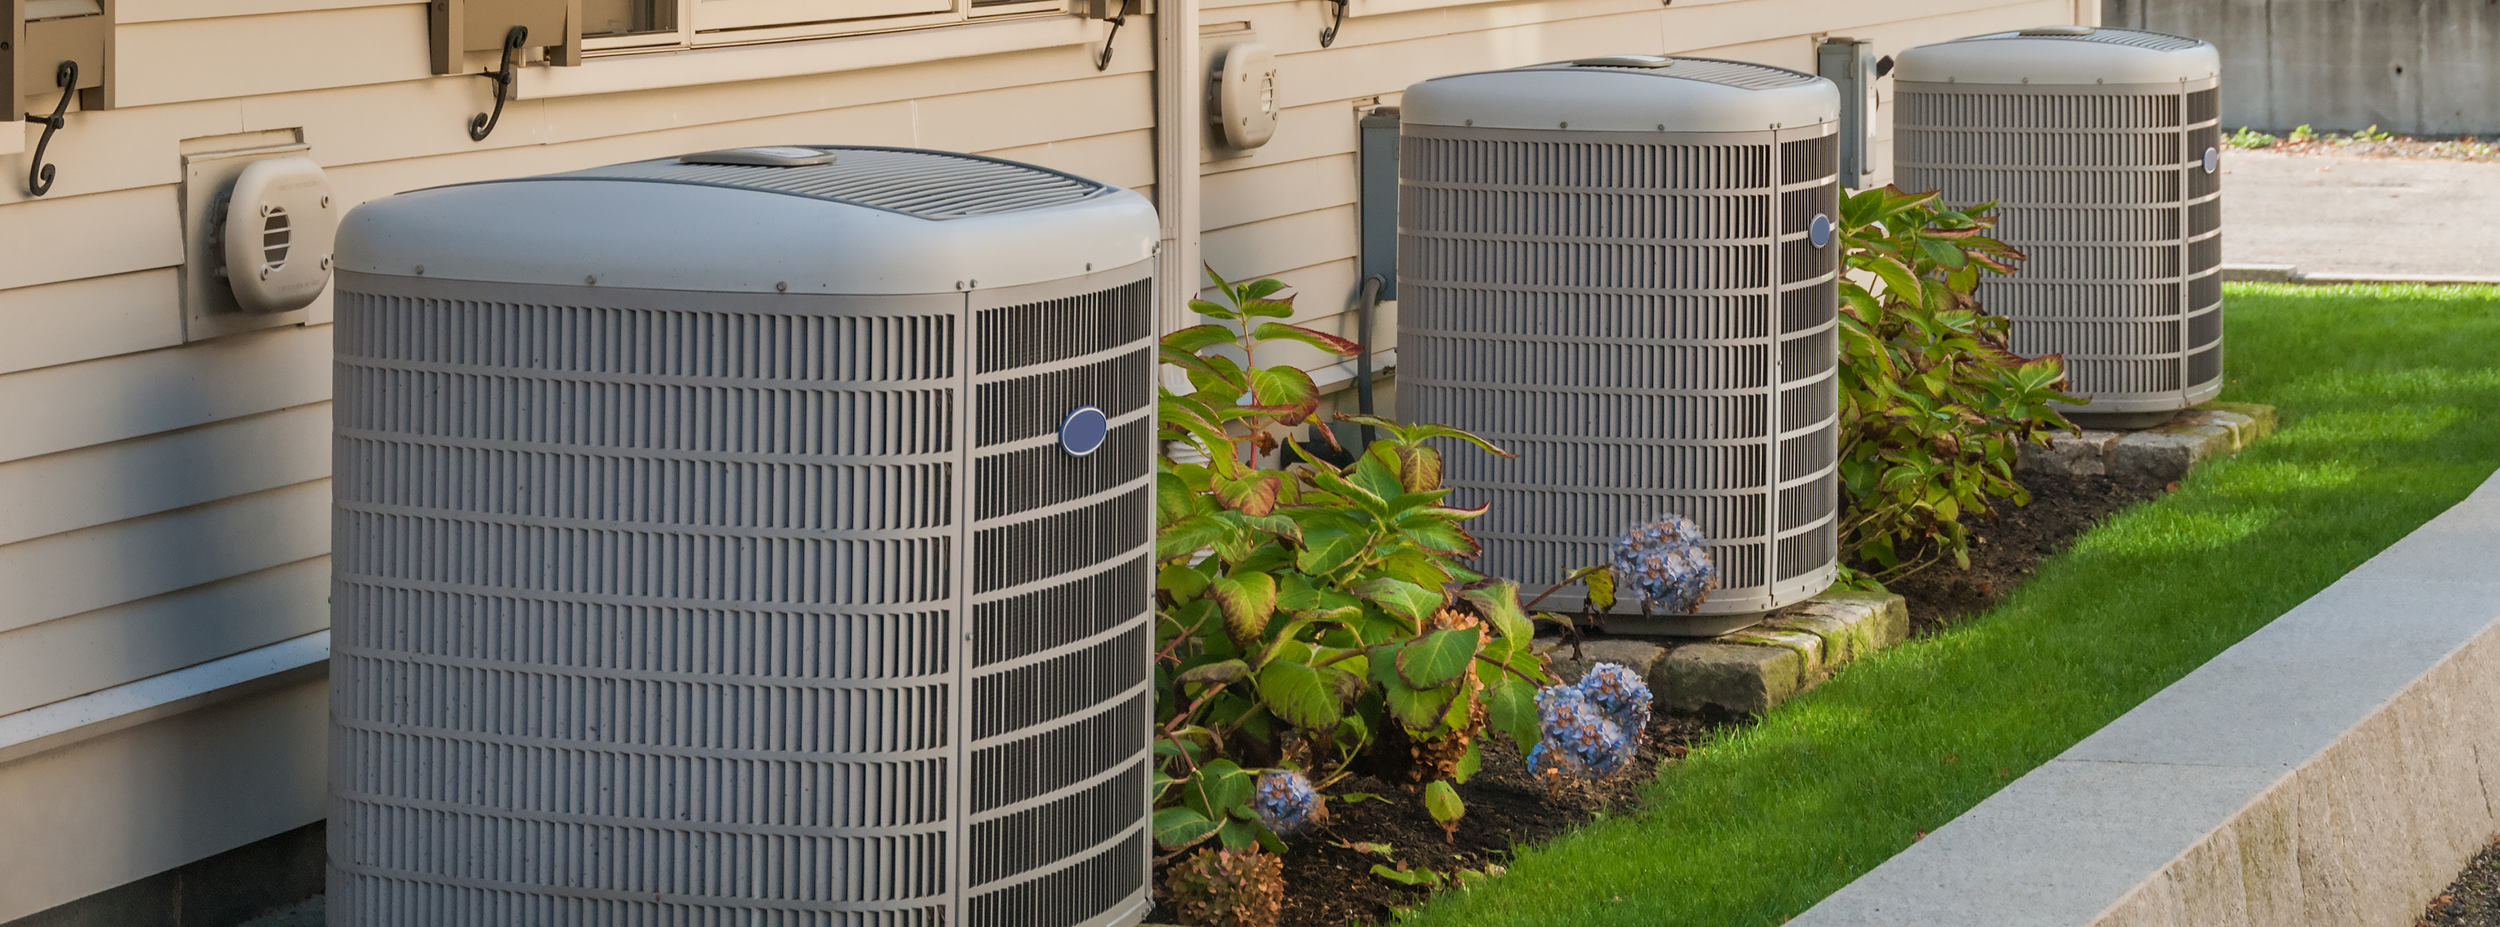 hvac_header.png